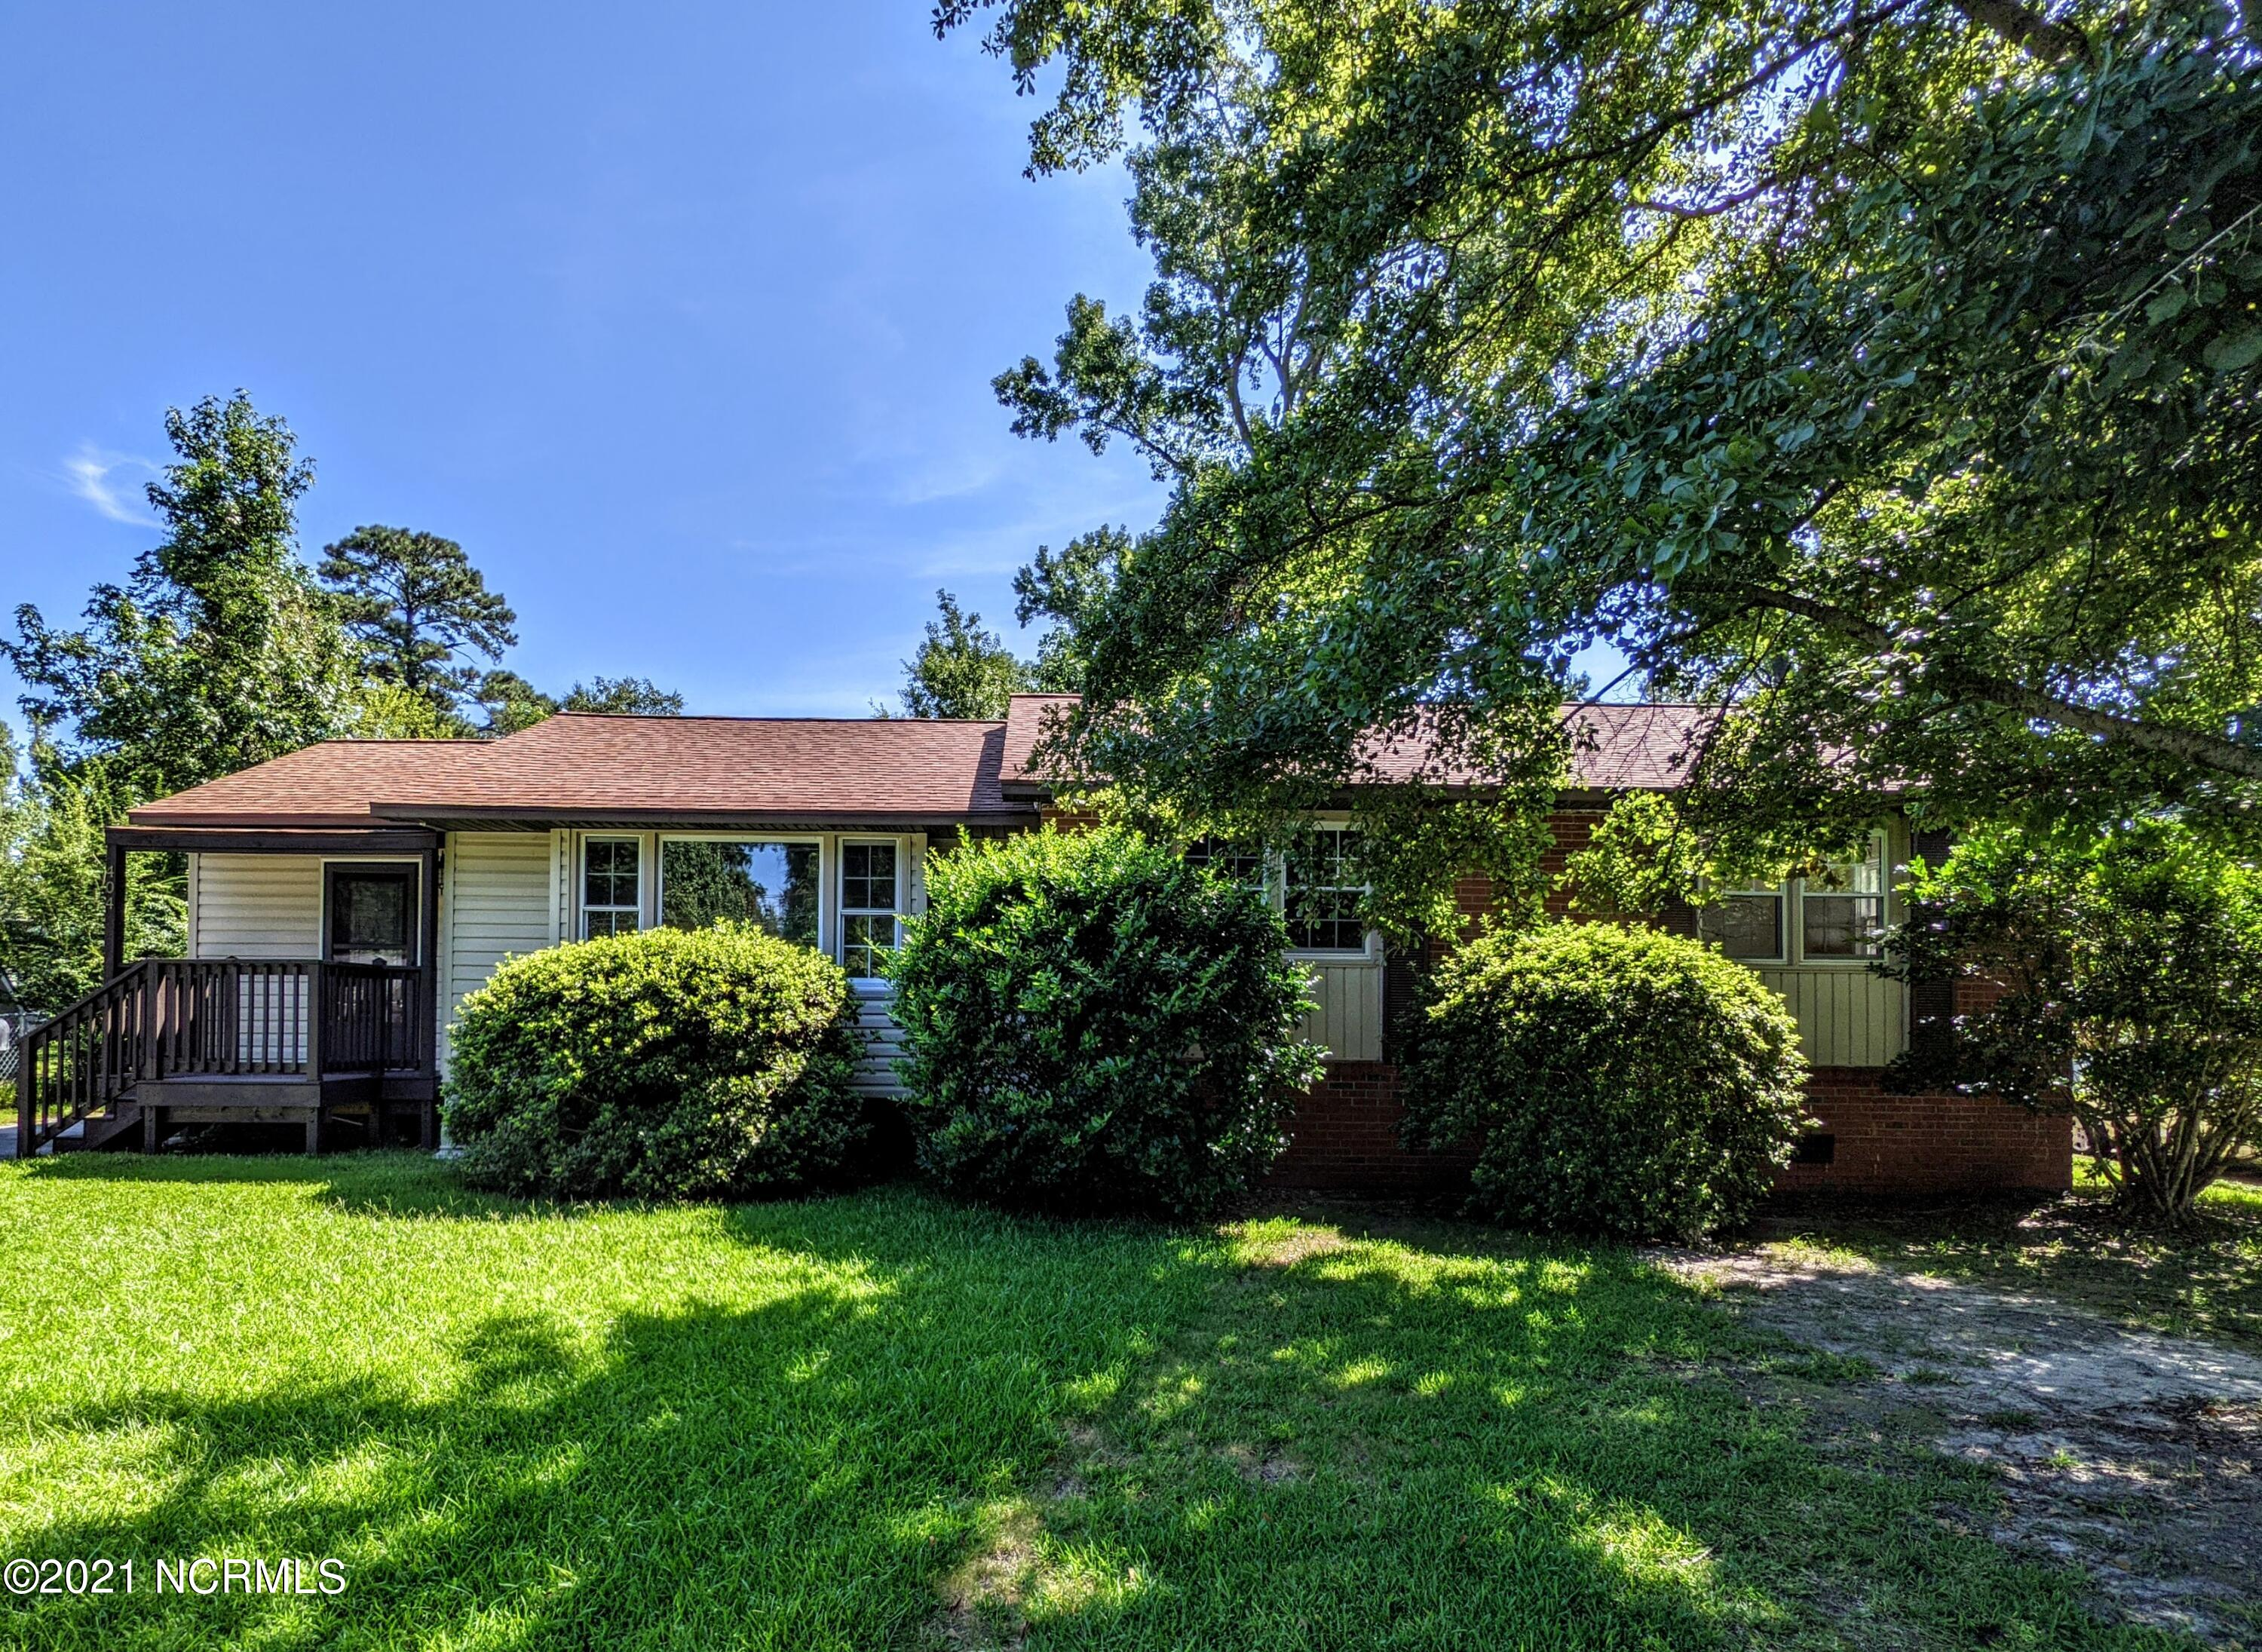 Fresh paint throughout most of the home, and new carpet in 3 of the bedrooms just installed! This beautiful 4 bedroom, 1 bath home sits in the cozy Northwoods neighborhood, right in the center of Jacksonville! From the covered front porch, through the foyer, you'll be welcomed into a large living room space with amazing laminate flooring. To the side is bedroom number 4, that can be easily turned into a bonus room/office, if you so desire. Next is a spacious dining area, that leads into a spacious galley kitchen. You'll be sure to appreciate the large amount of counter space for preparing meals, and tons of cabinet space for storage! The kitchen also has an amazing suite of stainless steel appliances, that are complimented with a modern backsplash. The laundry closet is easily accessible from this space, with extra storage as well. The bathroom is bright and refreshing, and has a spacious linen closet and tub/shower combo as well. There are then 3 additional bedrooms, that are all spacious and all come with installed ceiling fans. The home is located near the main shopping centers, restaurants and theaters. You're also just minutes away from the mall and all surrounding military bases. This Amazing Home is ready to be seen with a short notice, so schedule your showing today!